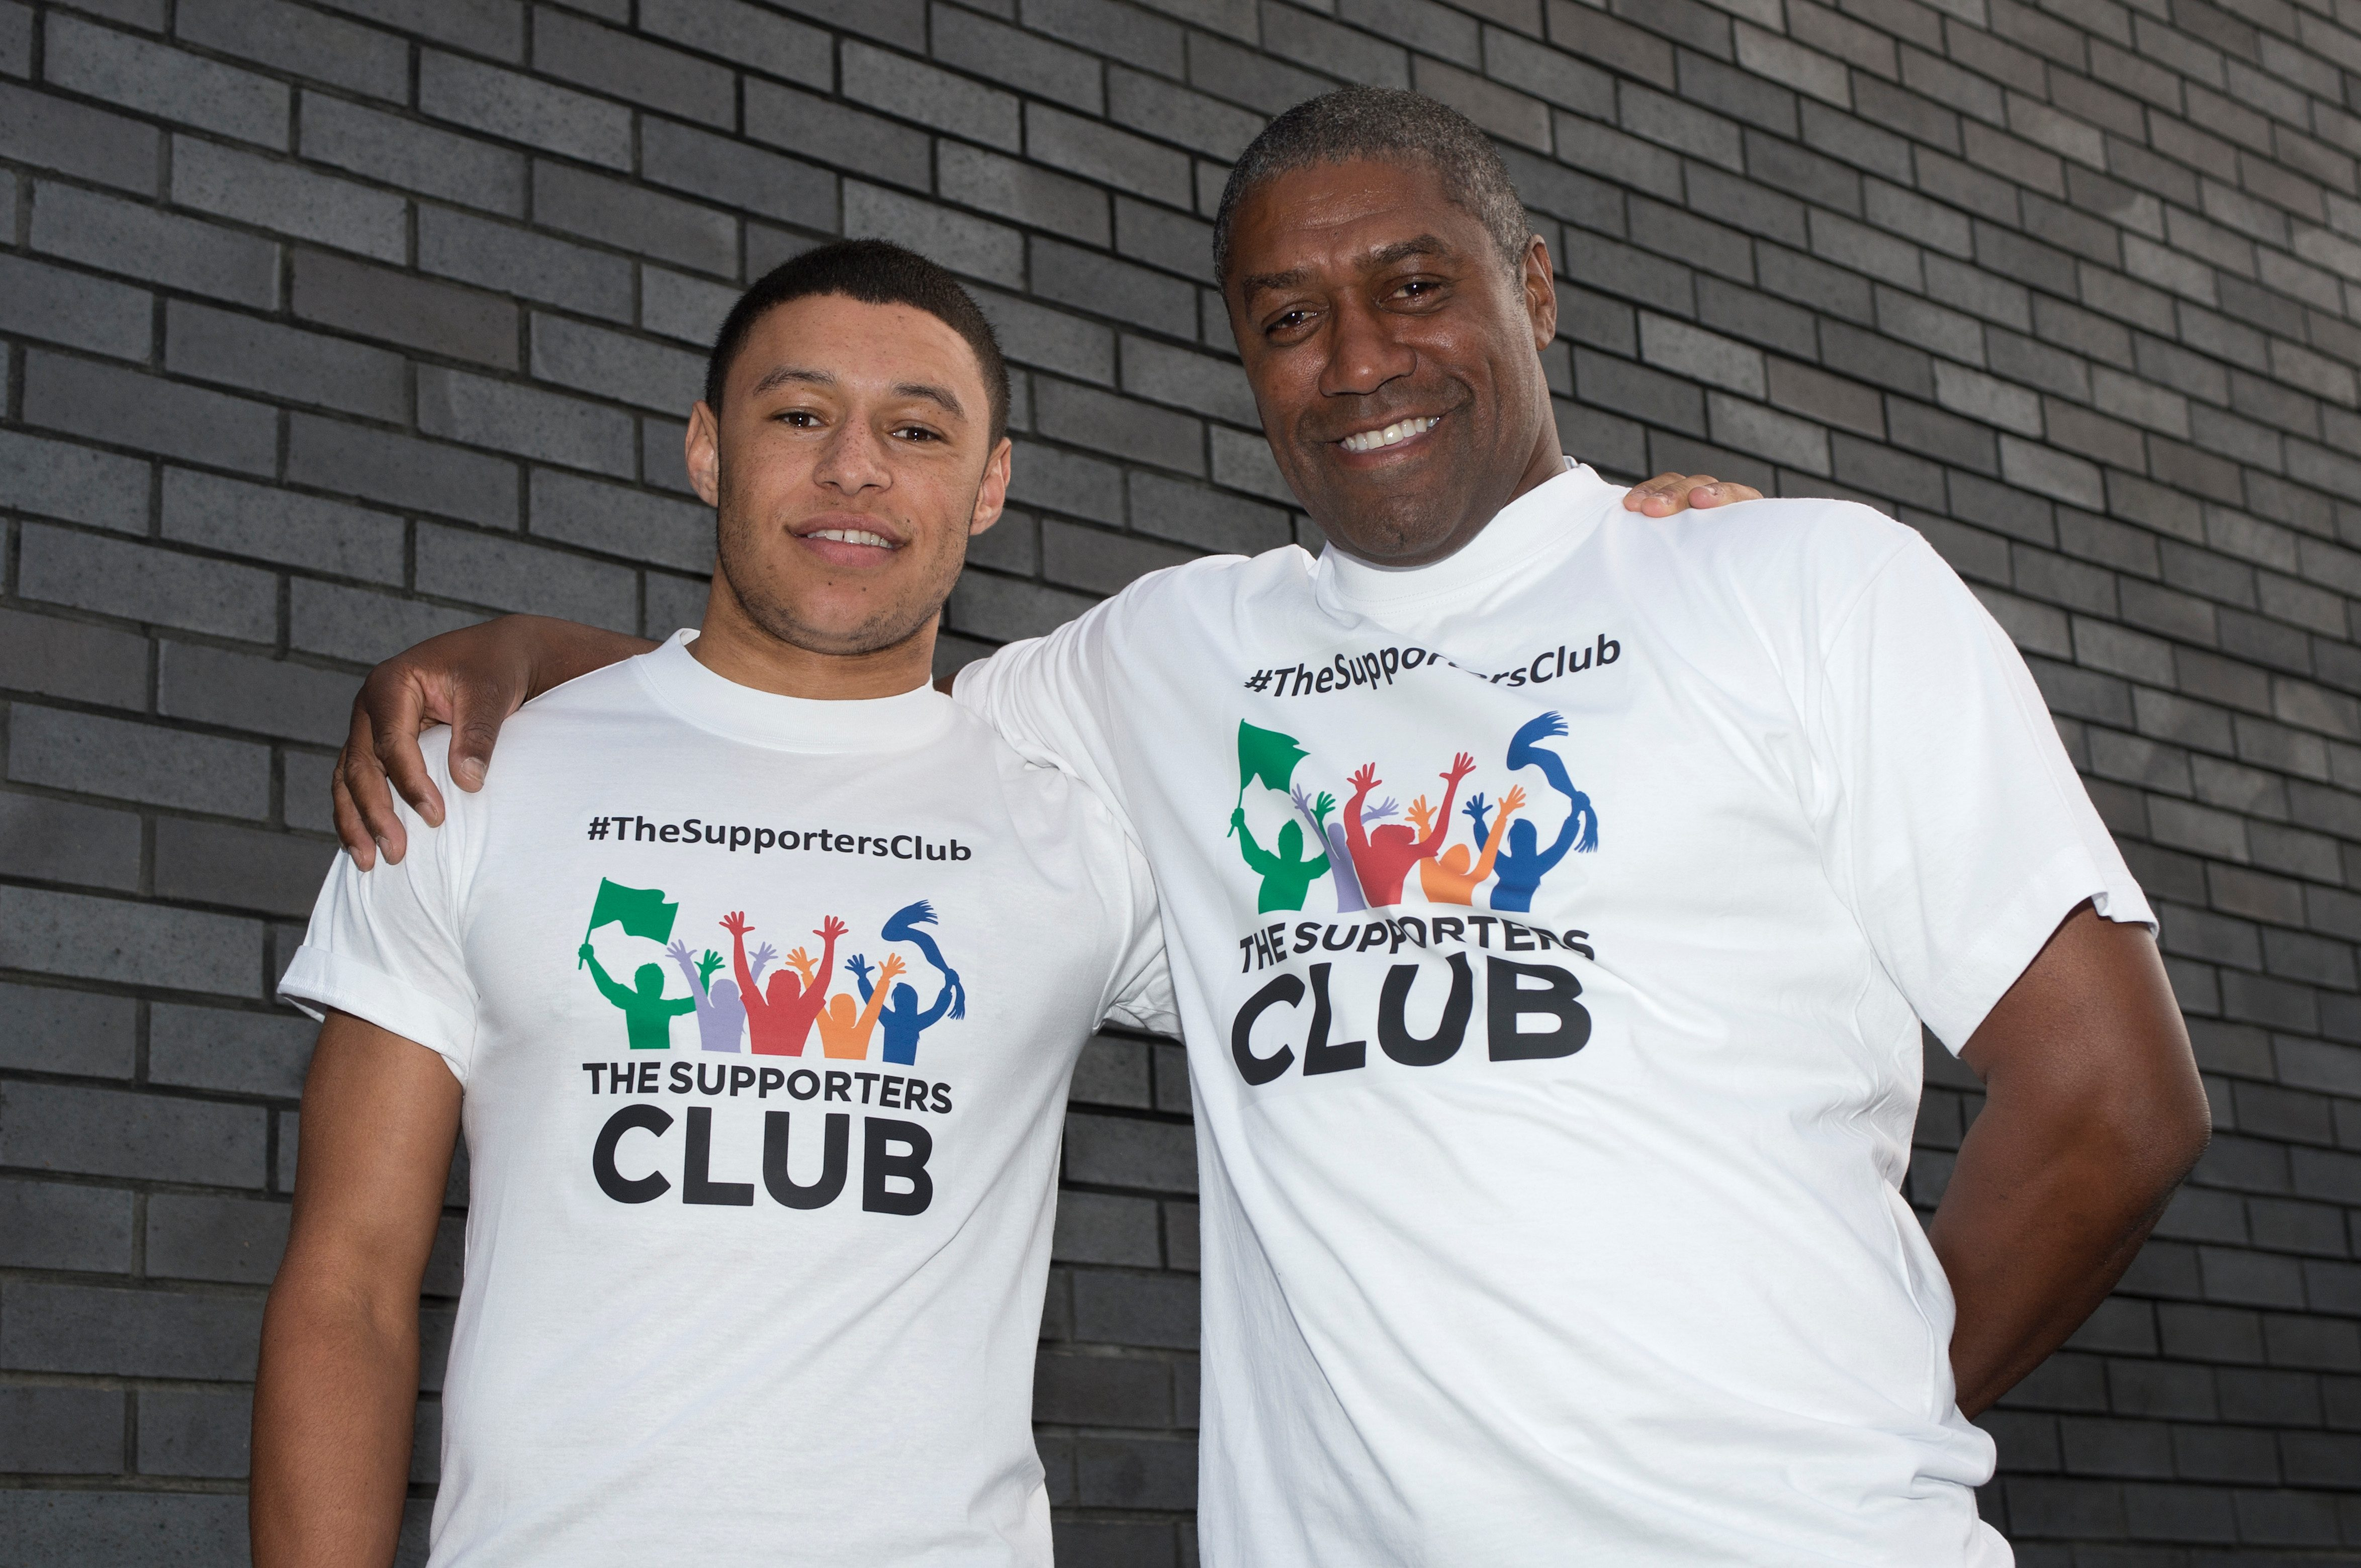 Mark is the father of Liverpool and England star Alex Oxlade-Chamberlain who already has more caps than his dad for his country